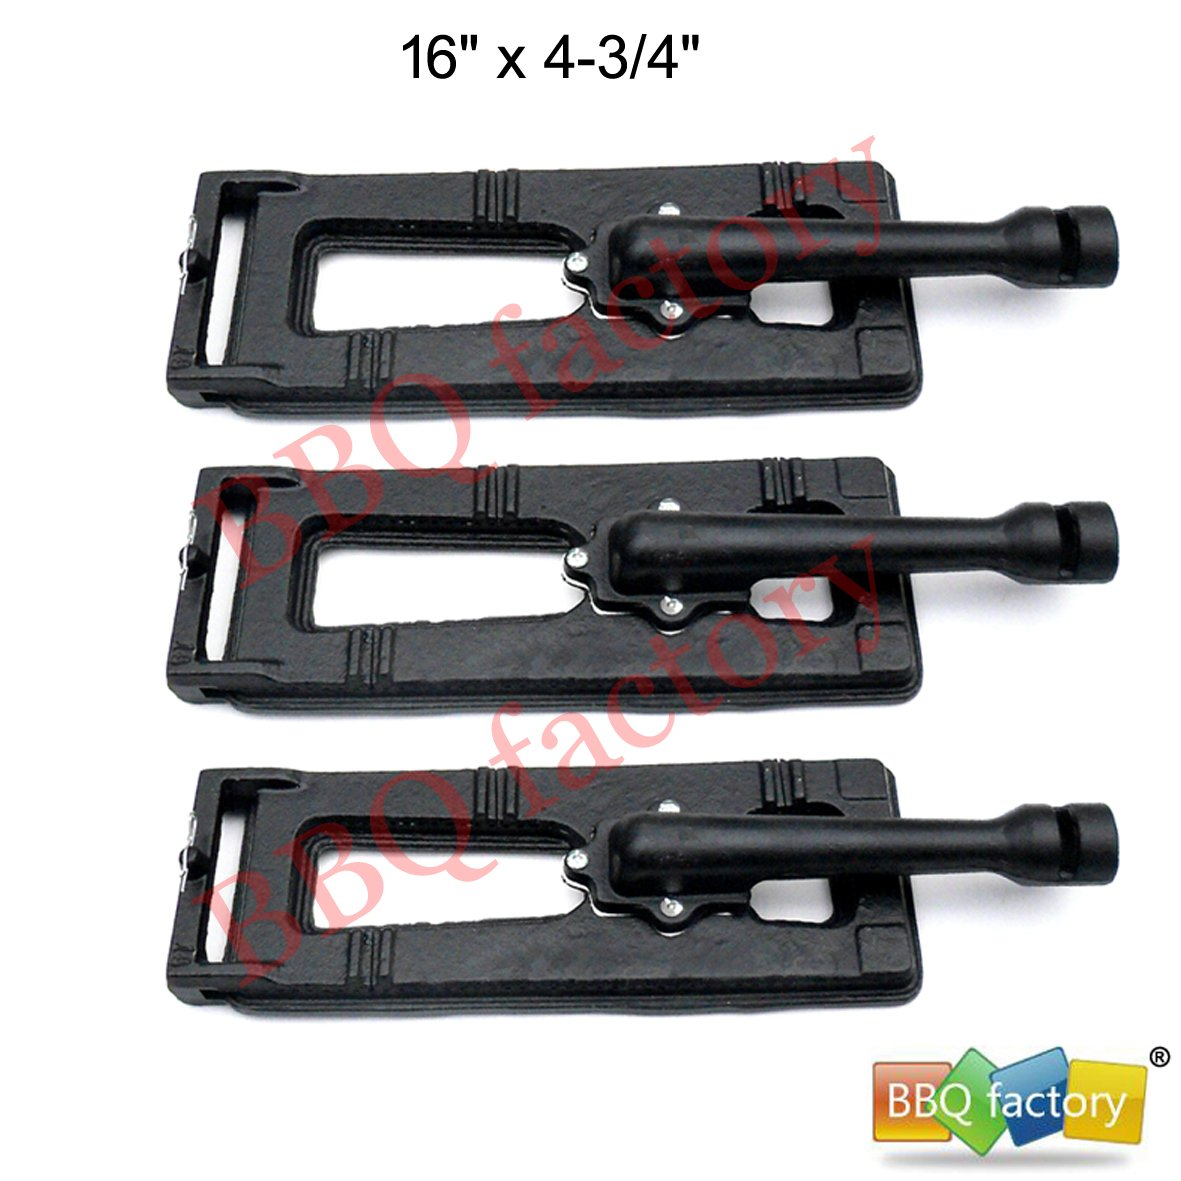 bbq factory Replacement Cast-Iron Grill Pipe Burner JBX251(3-Pack) Select Gas Grill Models by Sam's Club,Members Mark, Bakers and Chefs, Grand Hall, and Others